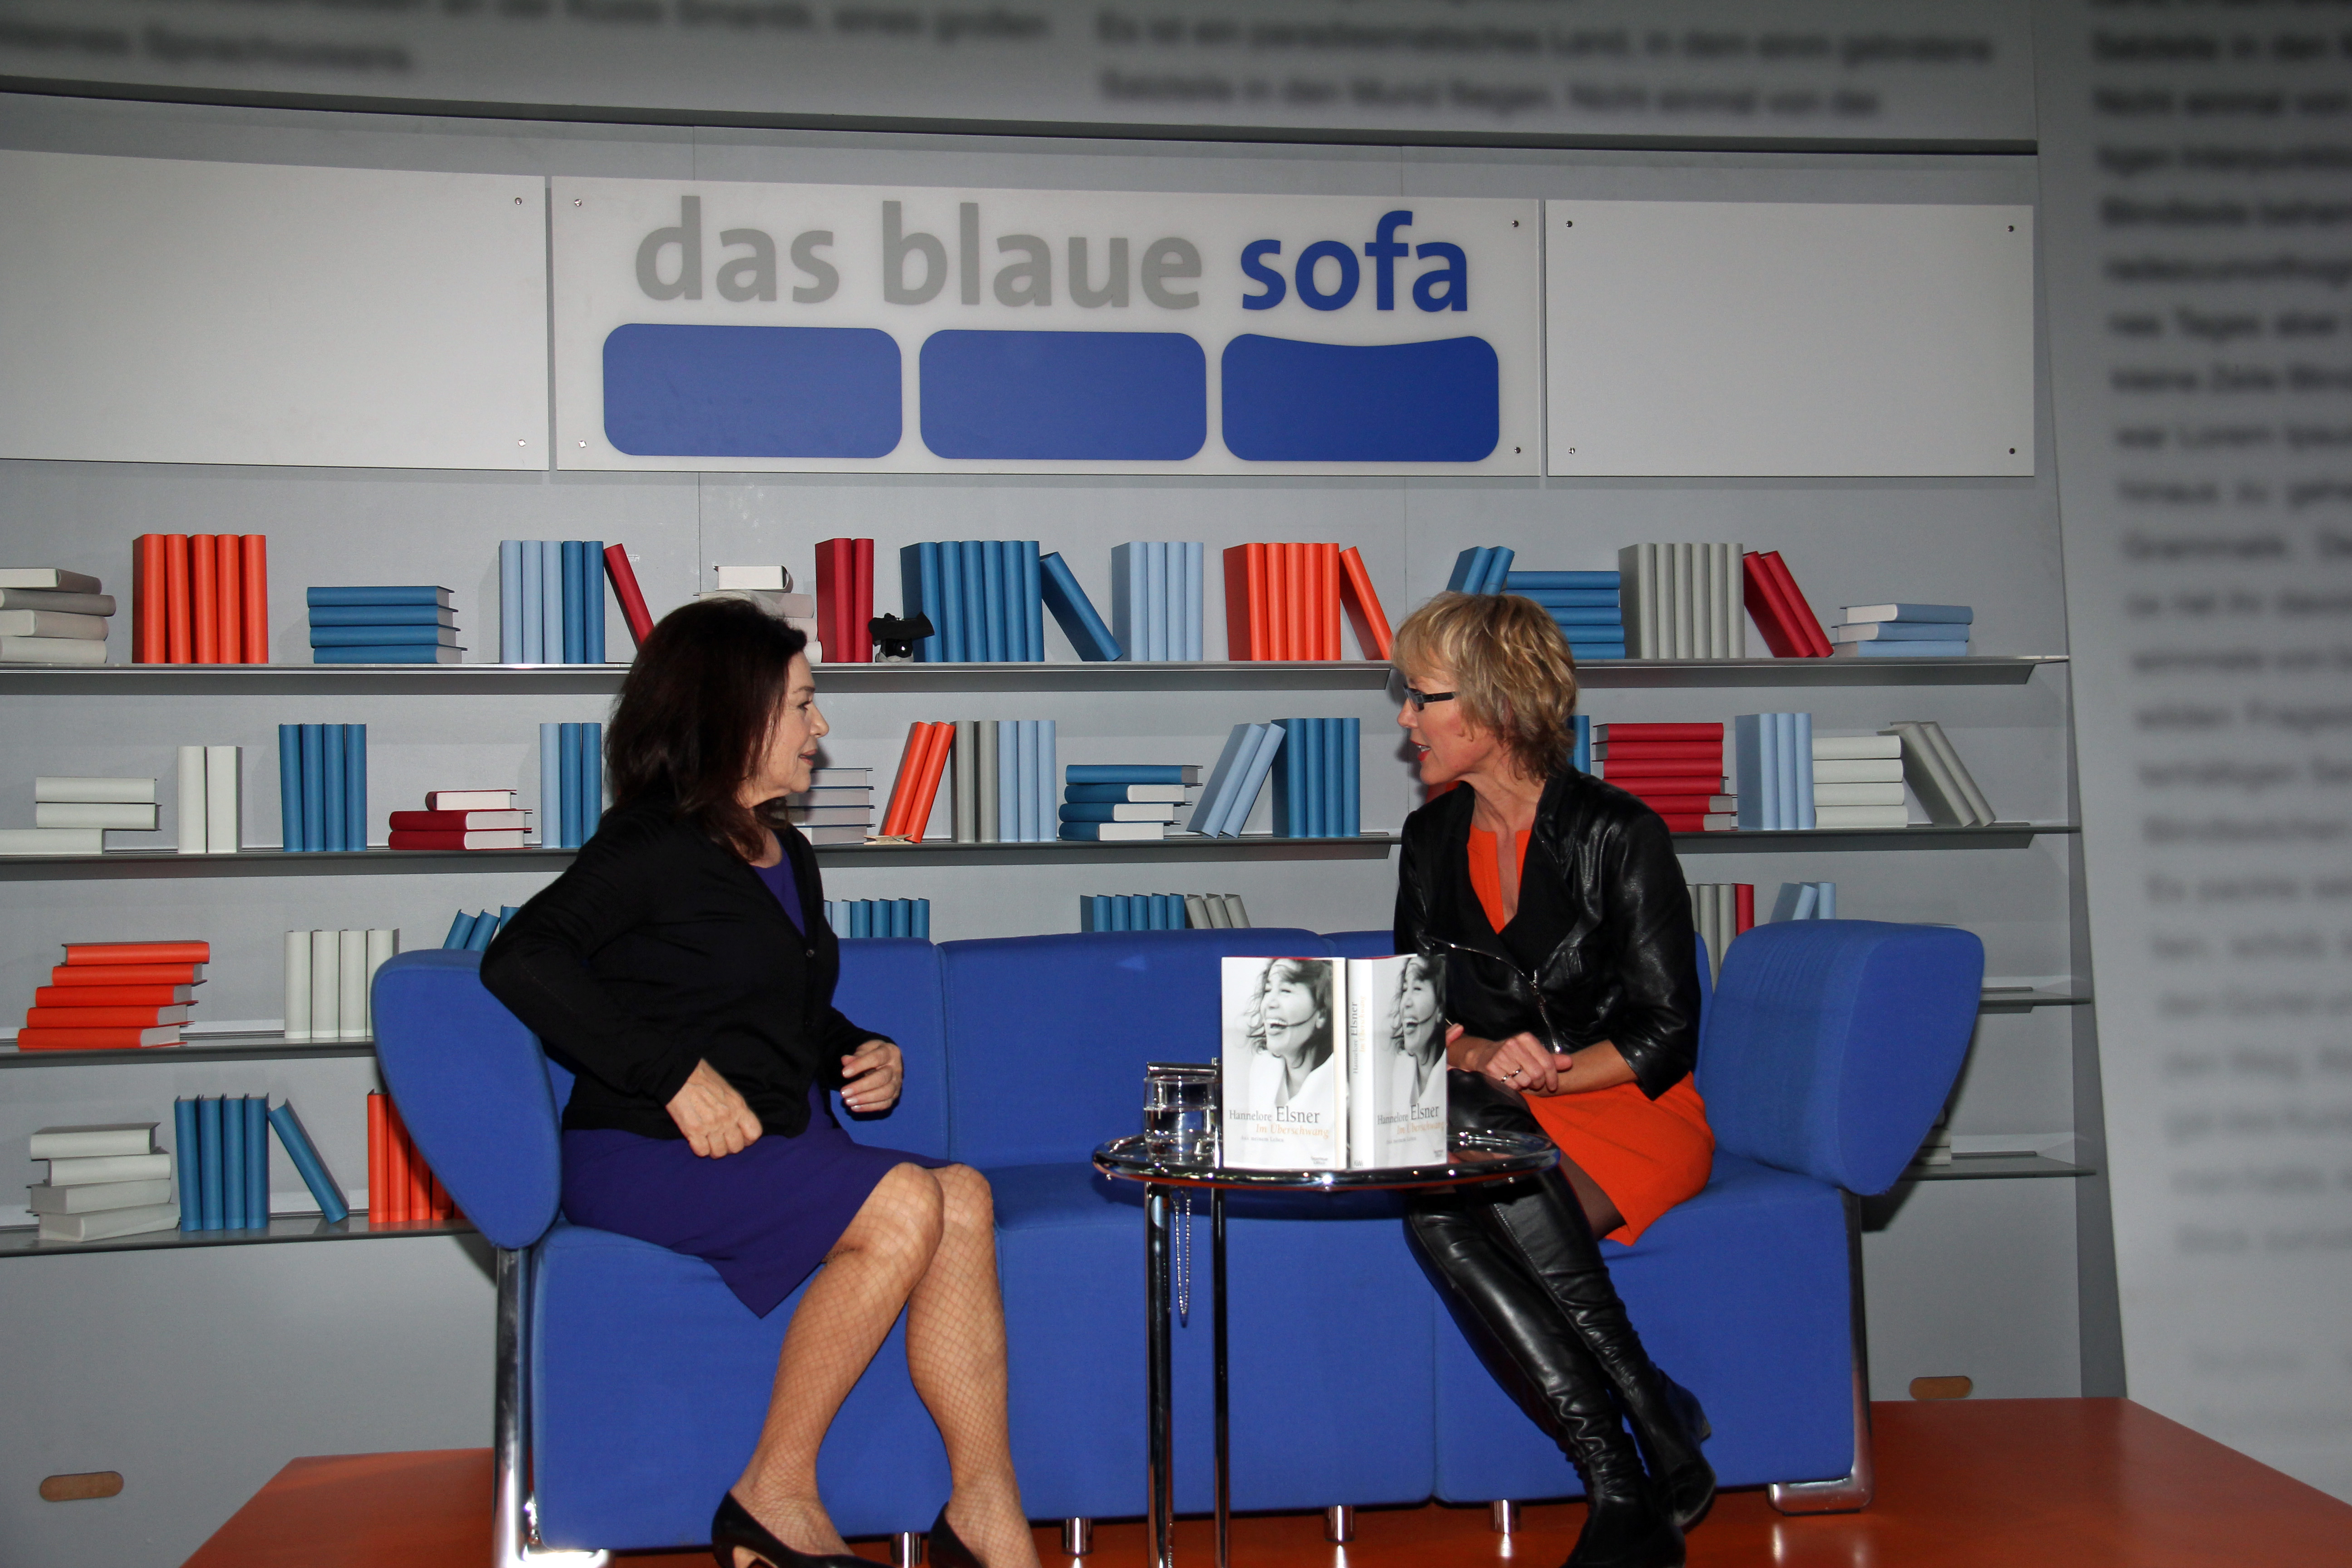 file frankfurter buchmesse 2011 das blaue sofa elsner und braun 1 jpg wikimedia commons. Black Bedroom Furniture Sets. Home Design Ideas